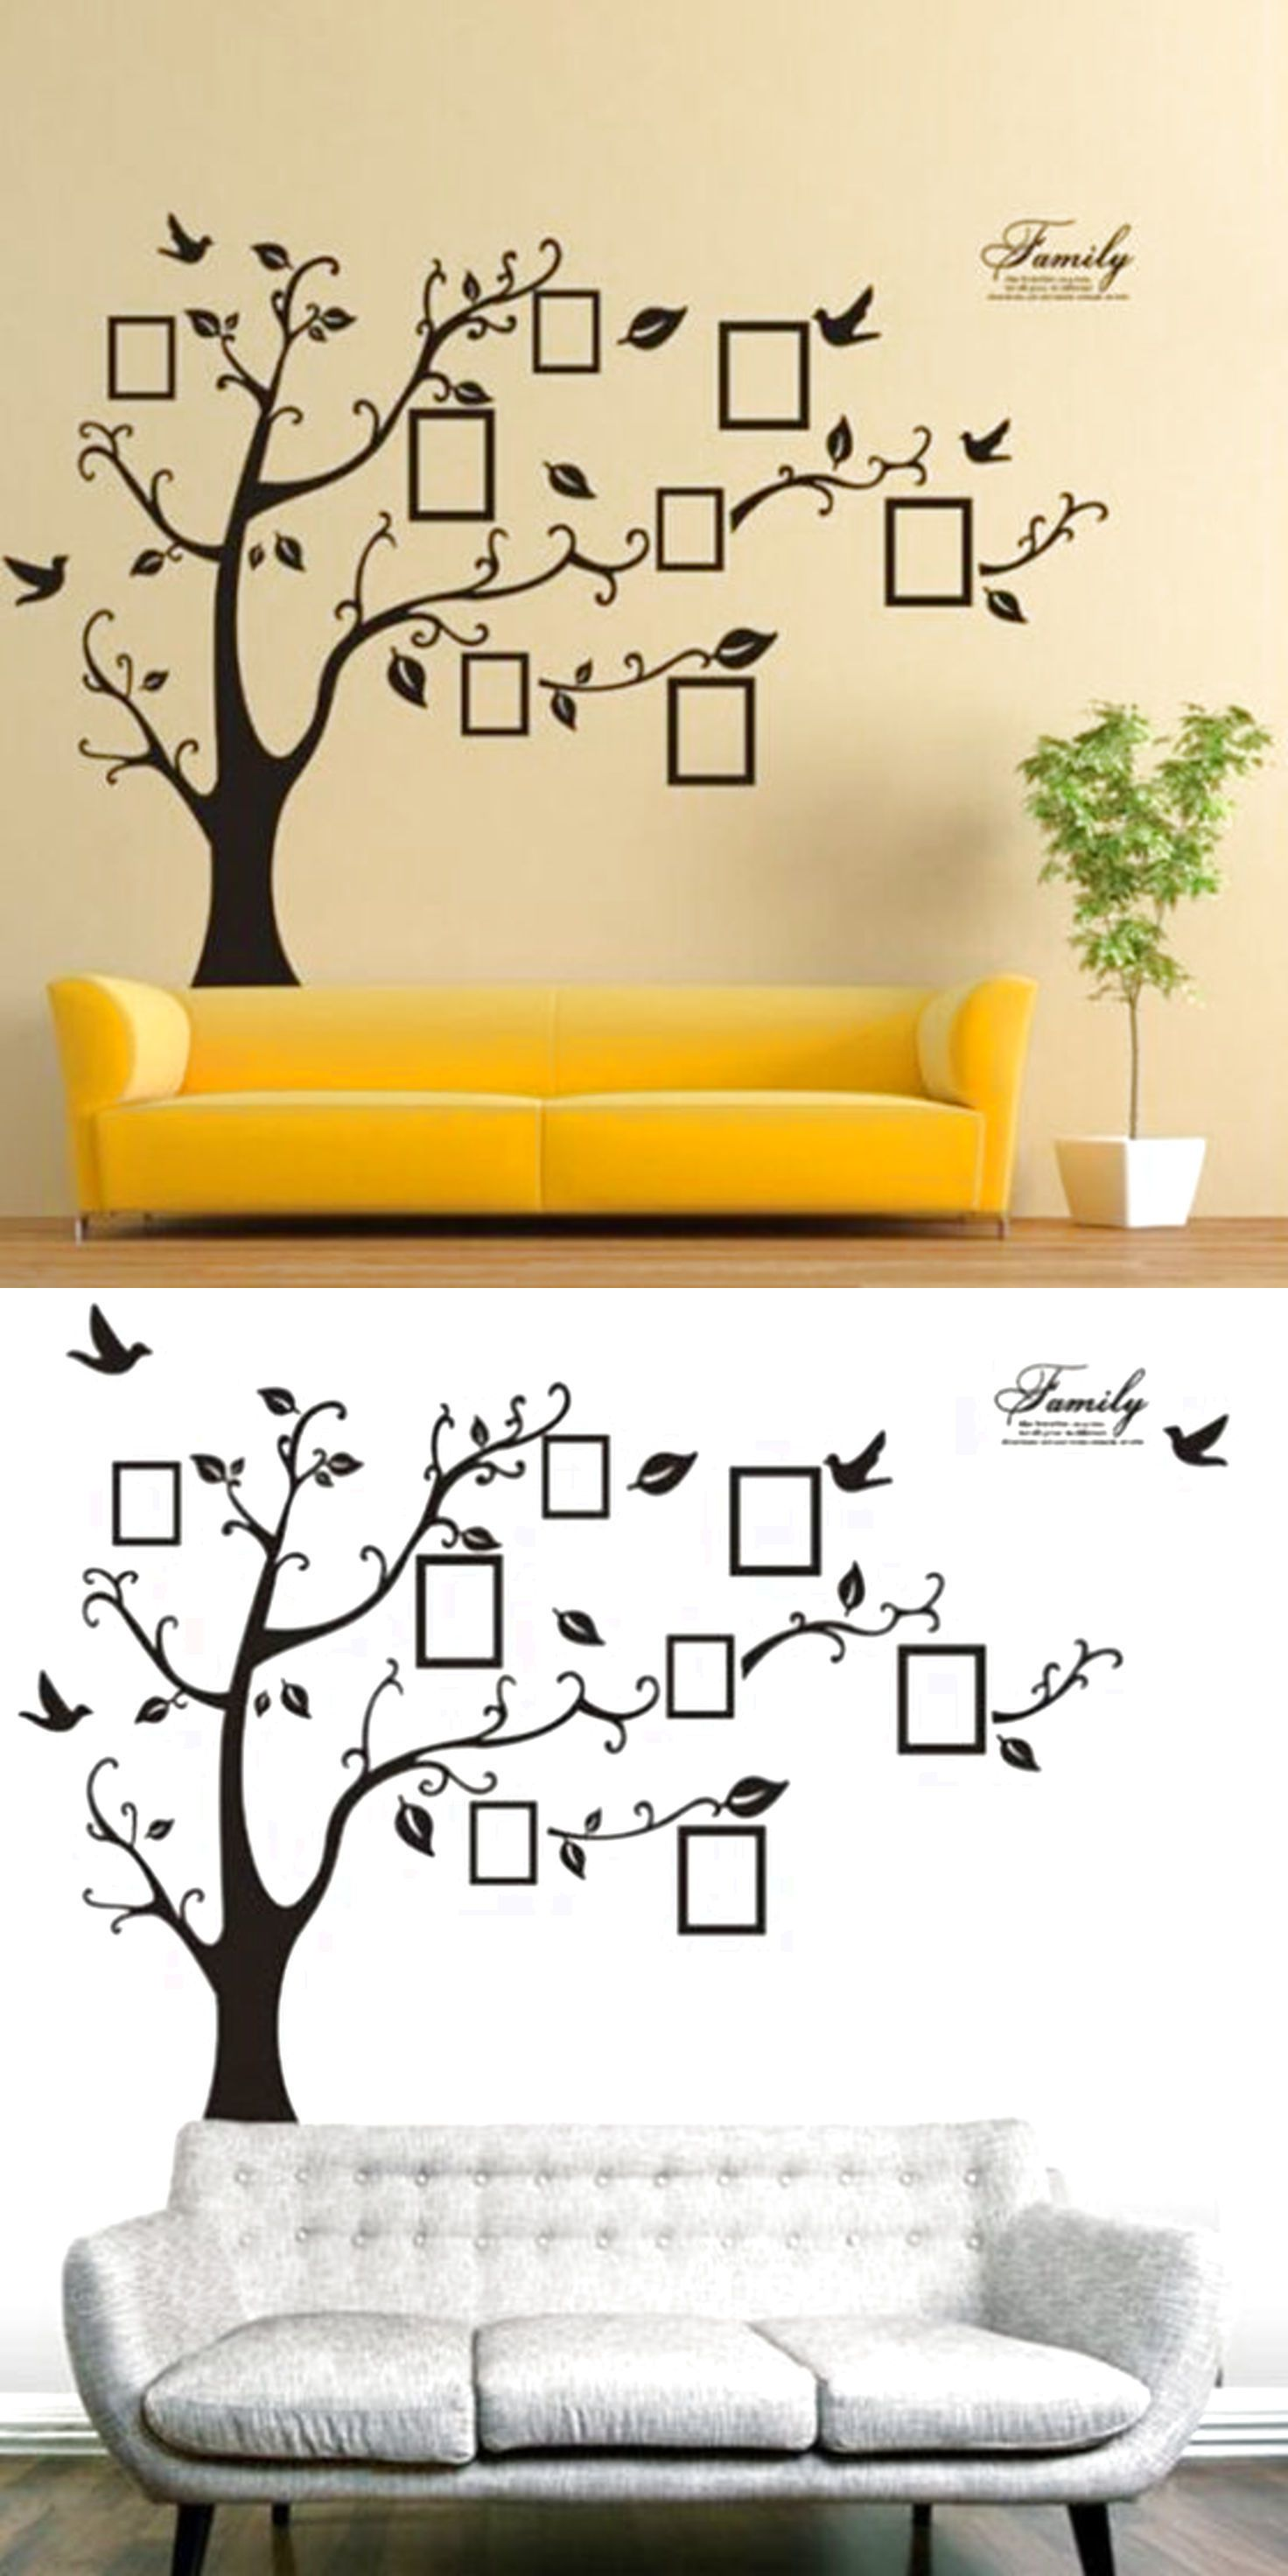 Family Tree Bird Wall Sticker Photo Picture Frame Removable Decal ...